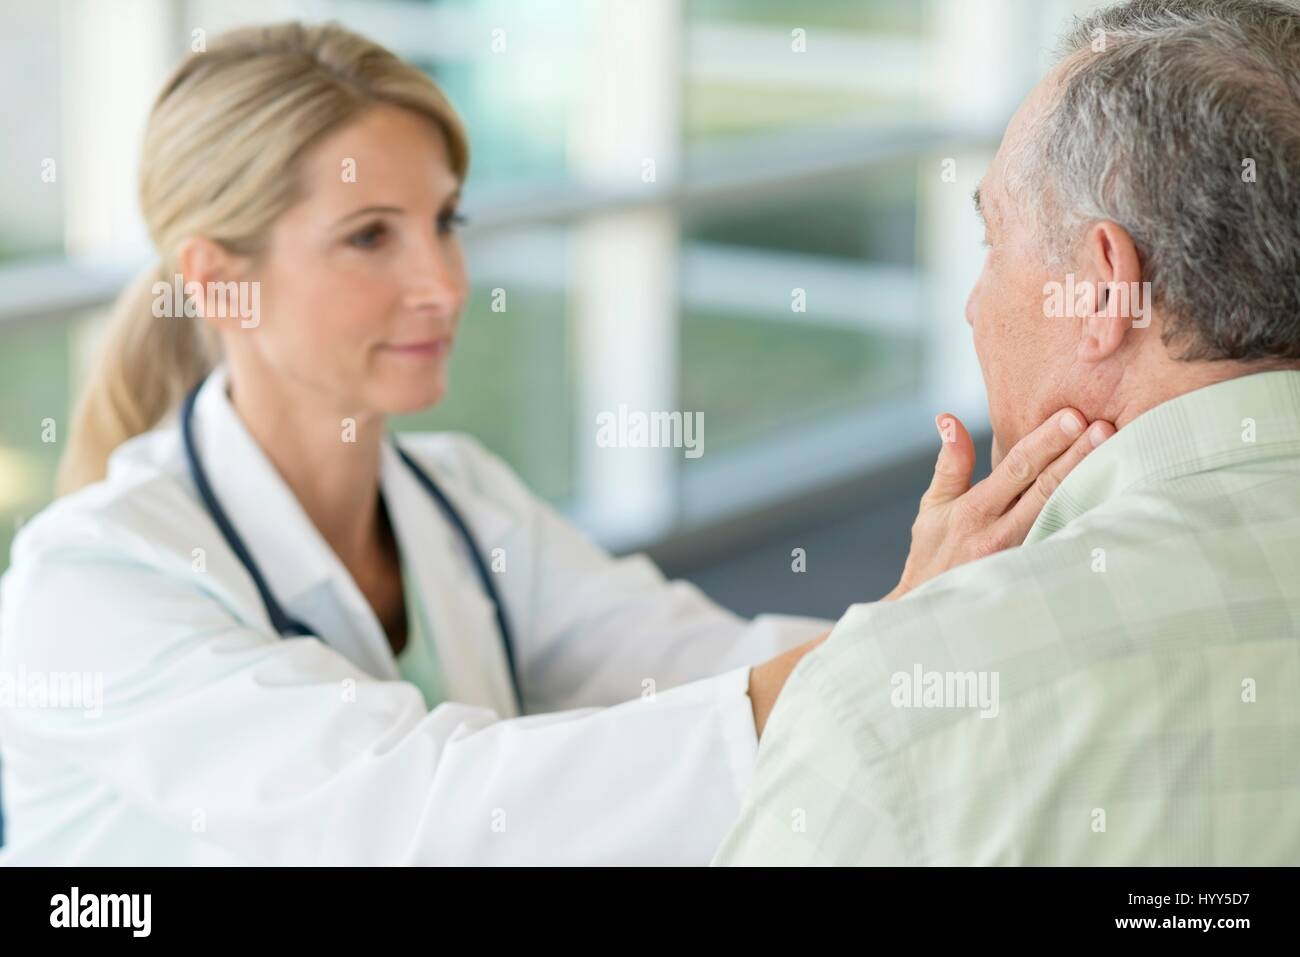 Female doctor touching senior man's neck. - Stock Image